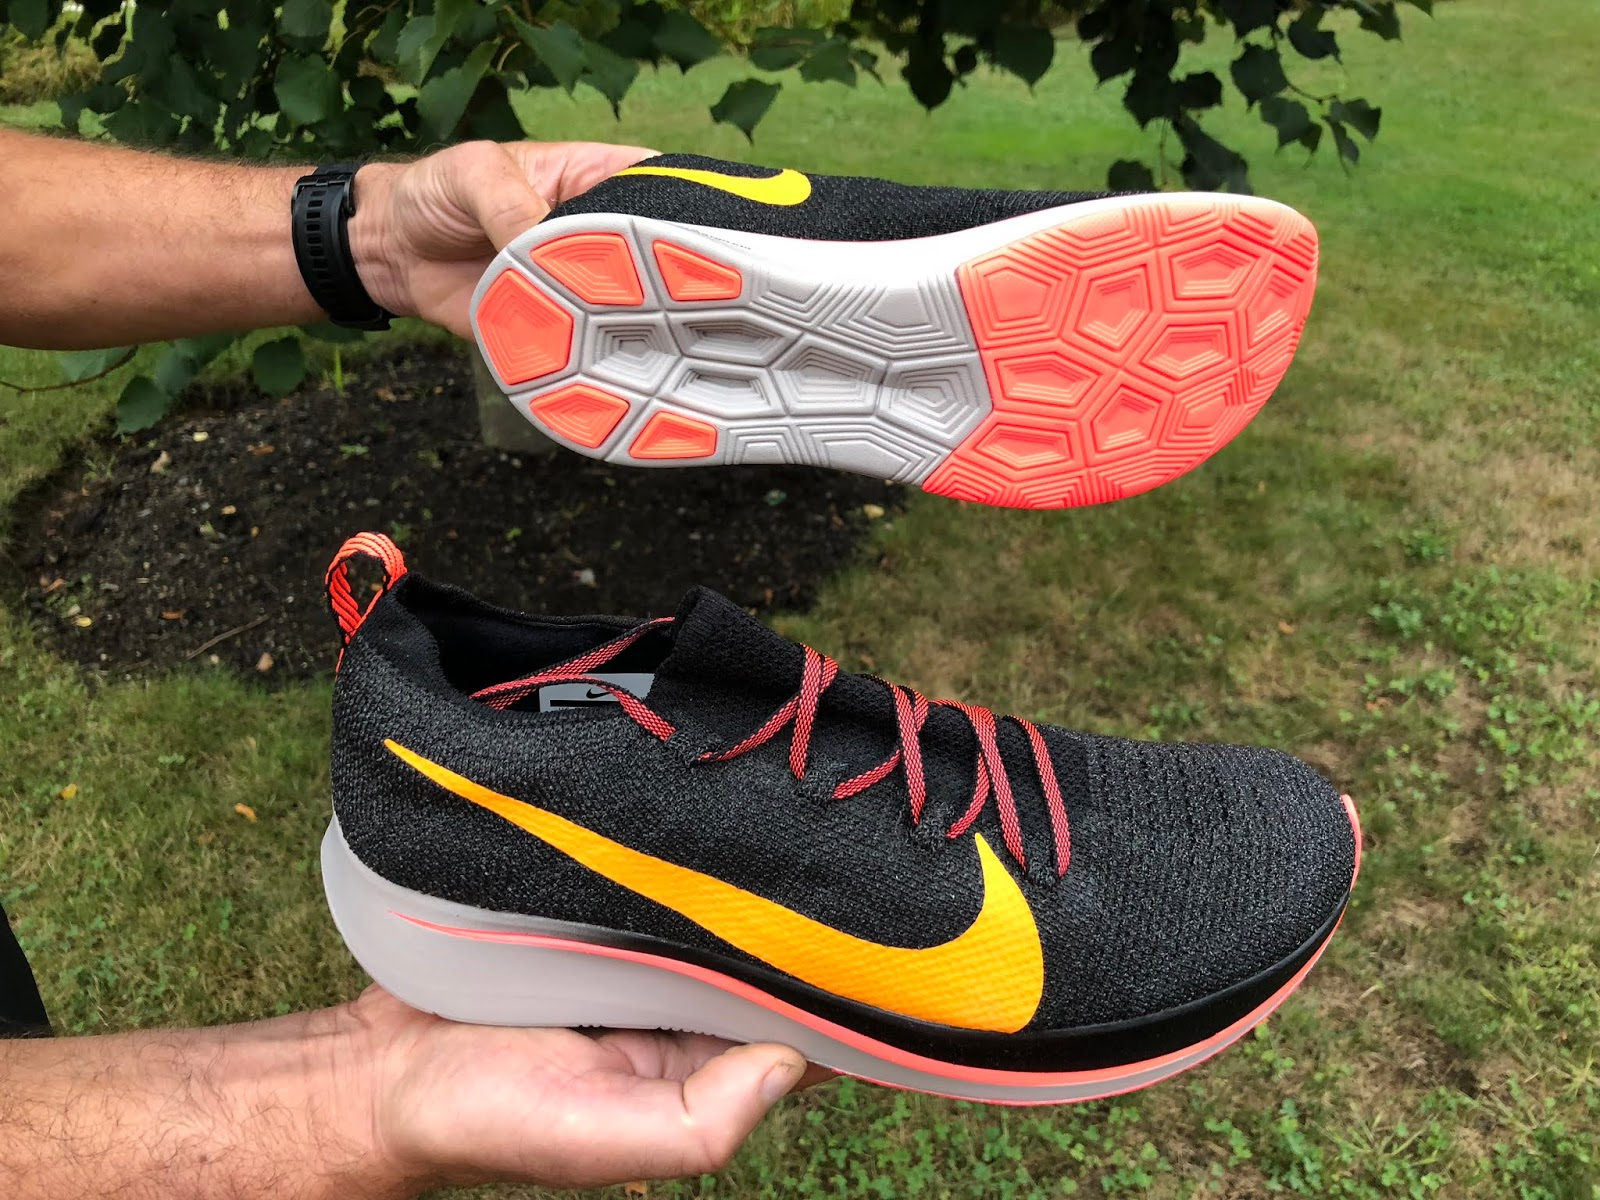 coupon code united states incredible prices Road Trail Run: Nike Zoom Fly Flyknit Initial Road Test ...